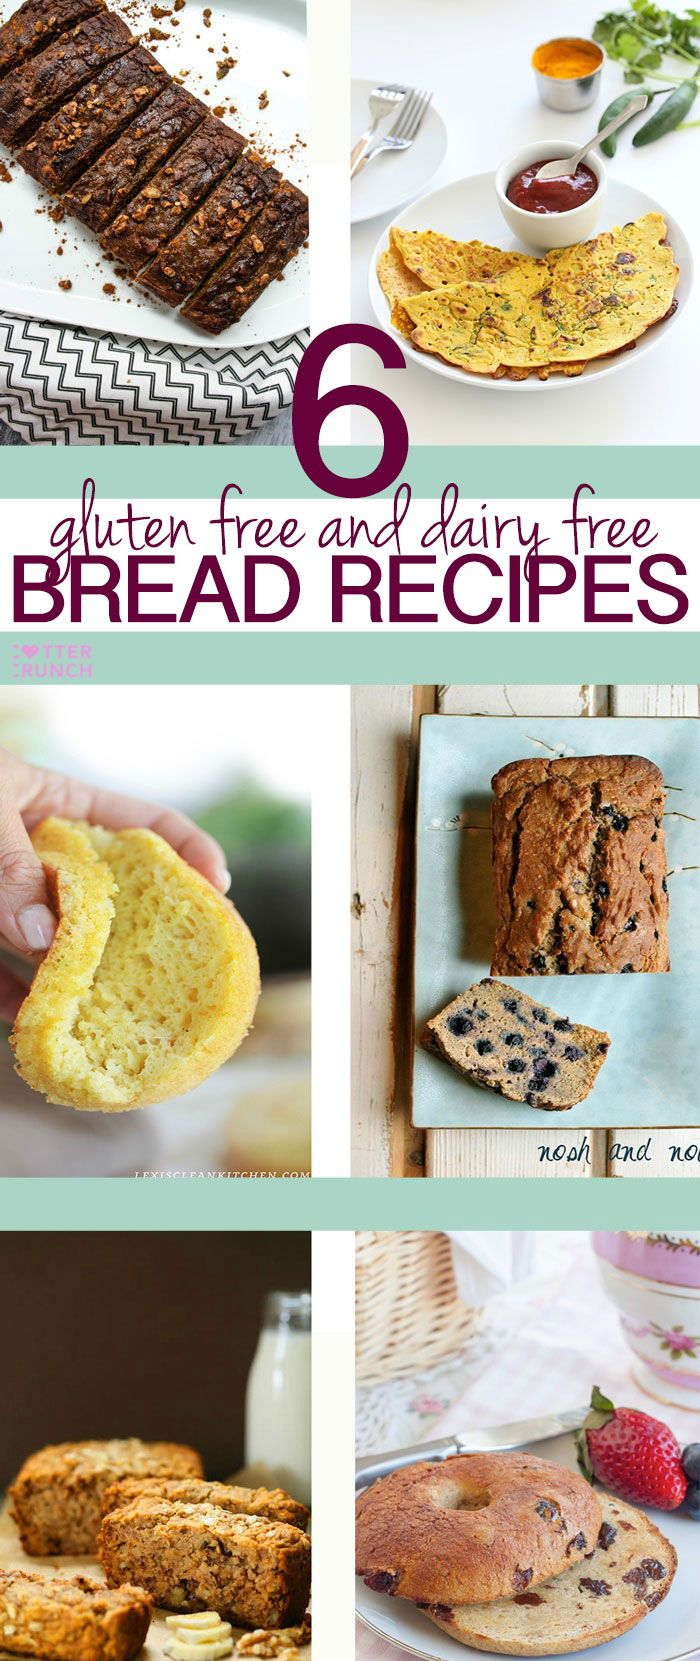 1000 images about gluten free recipes on pinterest for Gluten free canape ideas